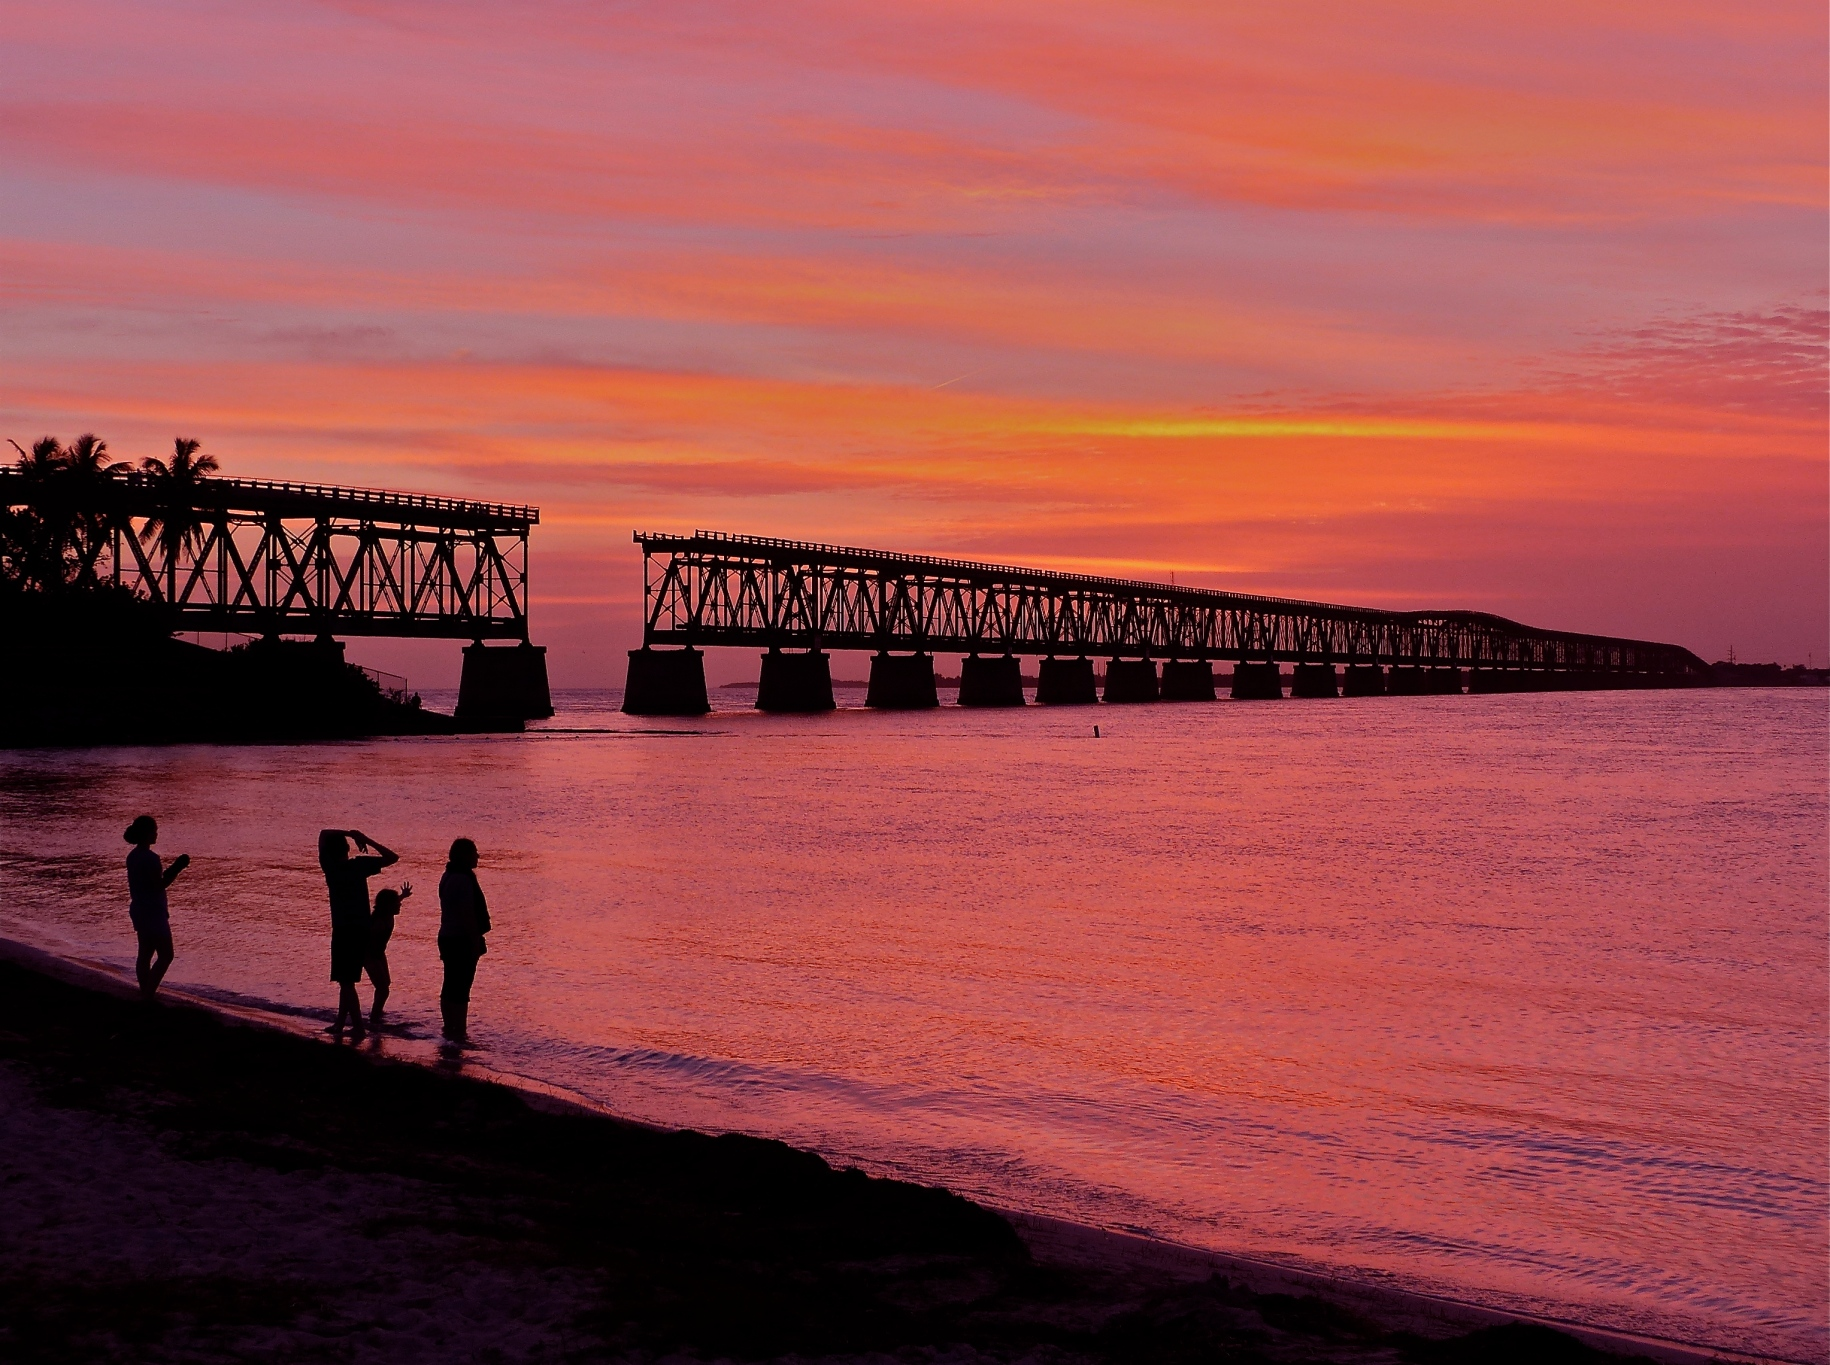 Wanderlust calls. Image of the Bahia Honda Rail Bridge in Florida, courtesy of Paint Your Landscape.